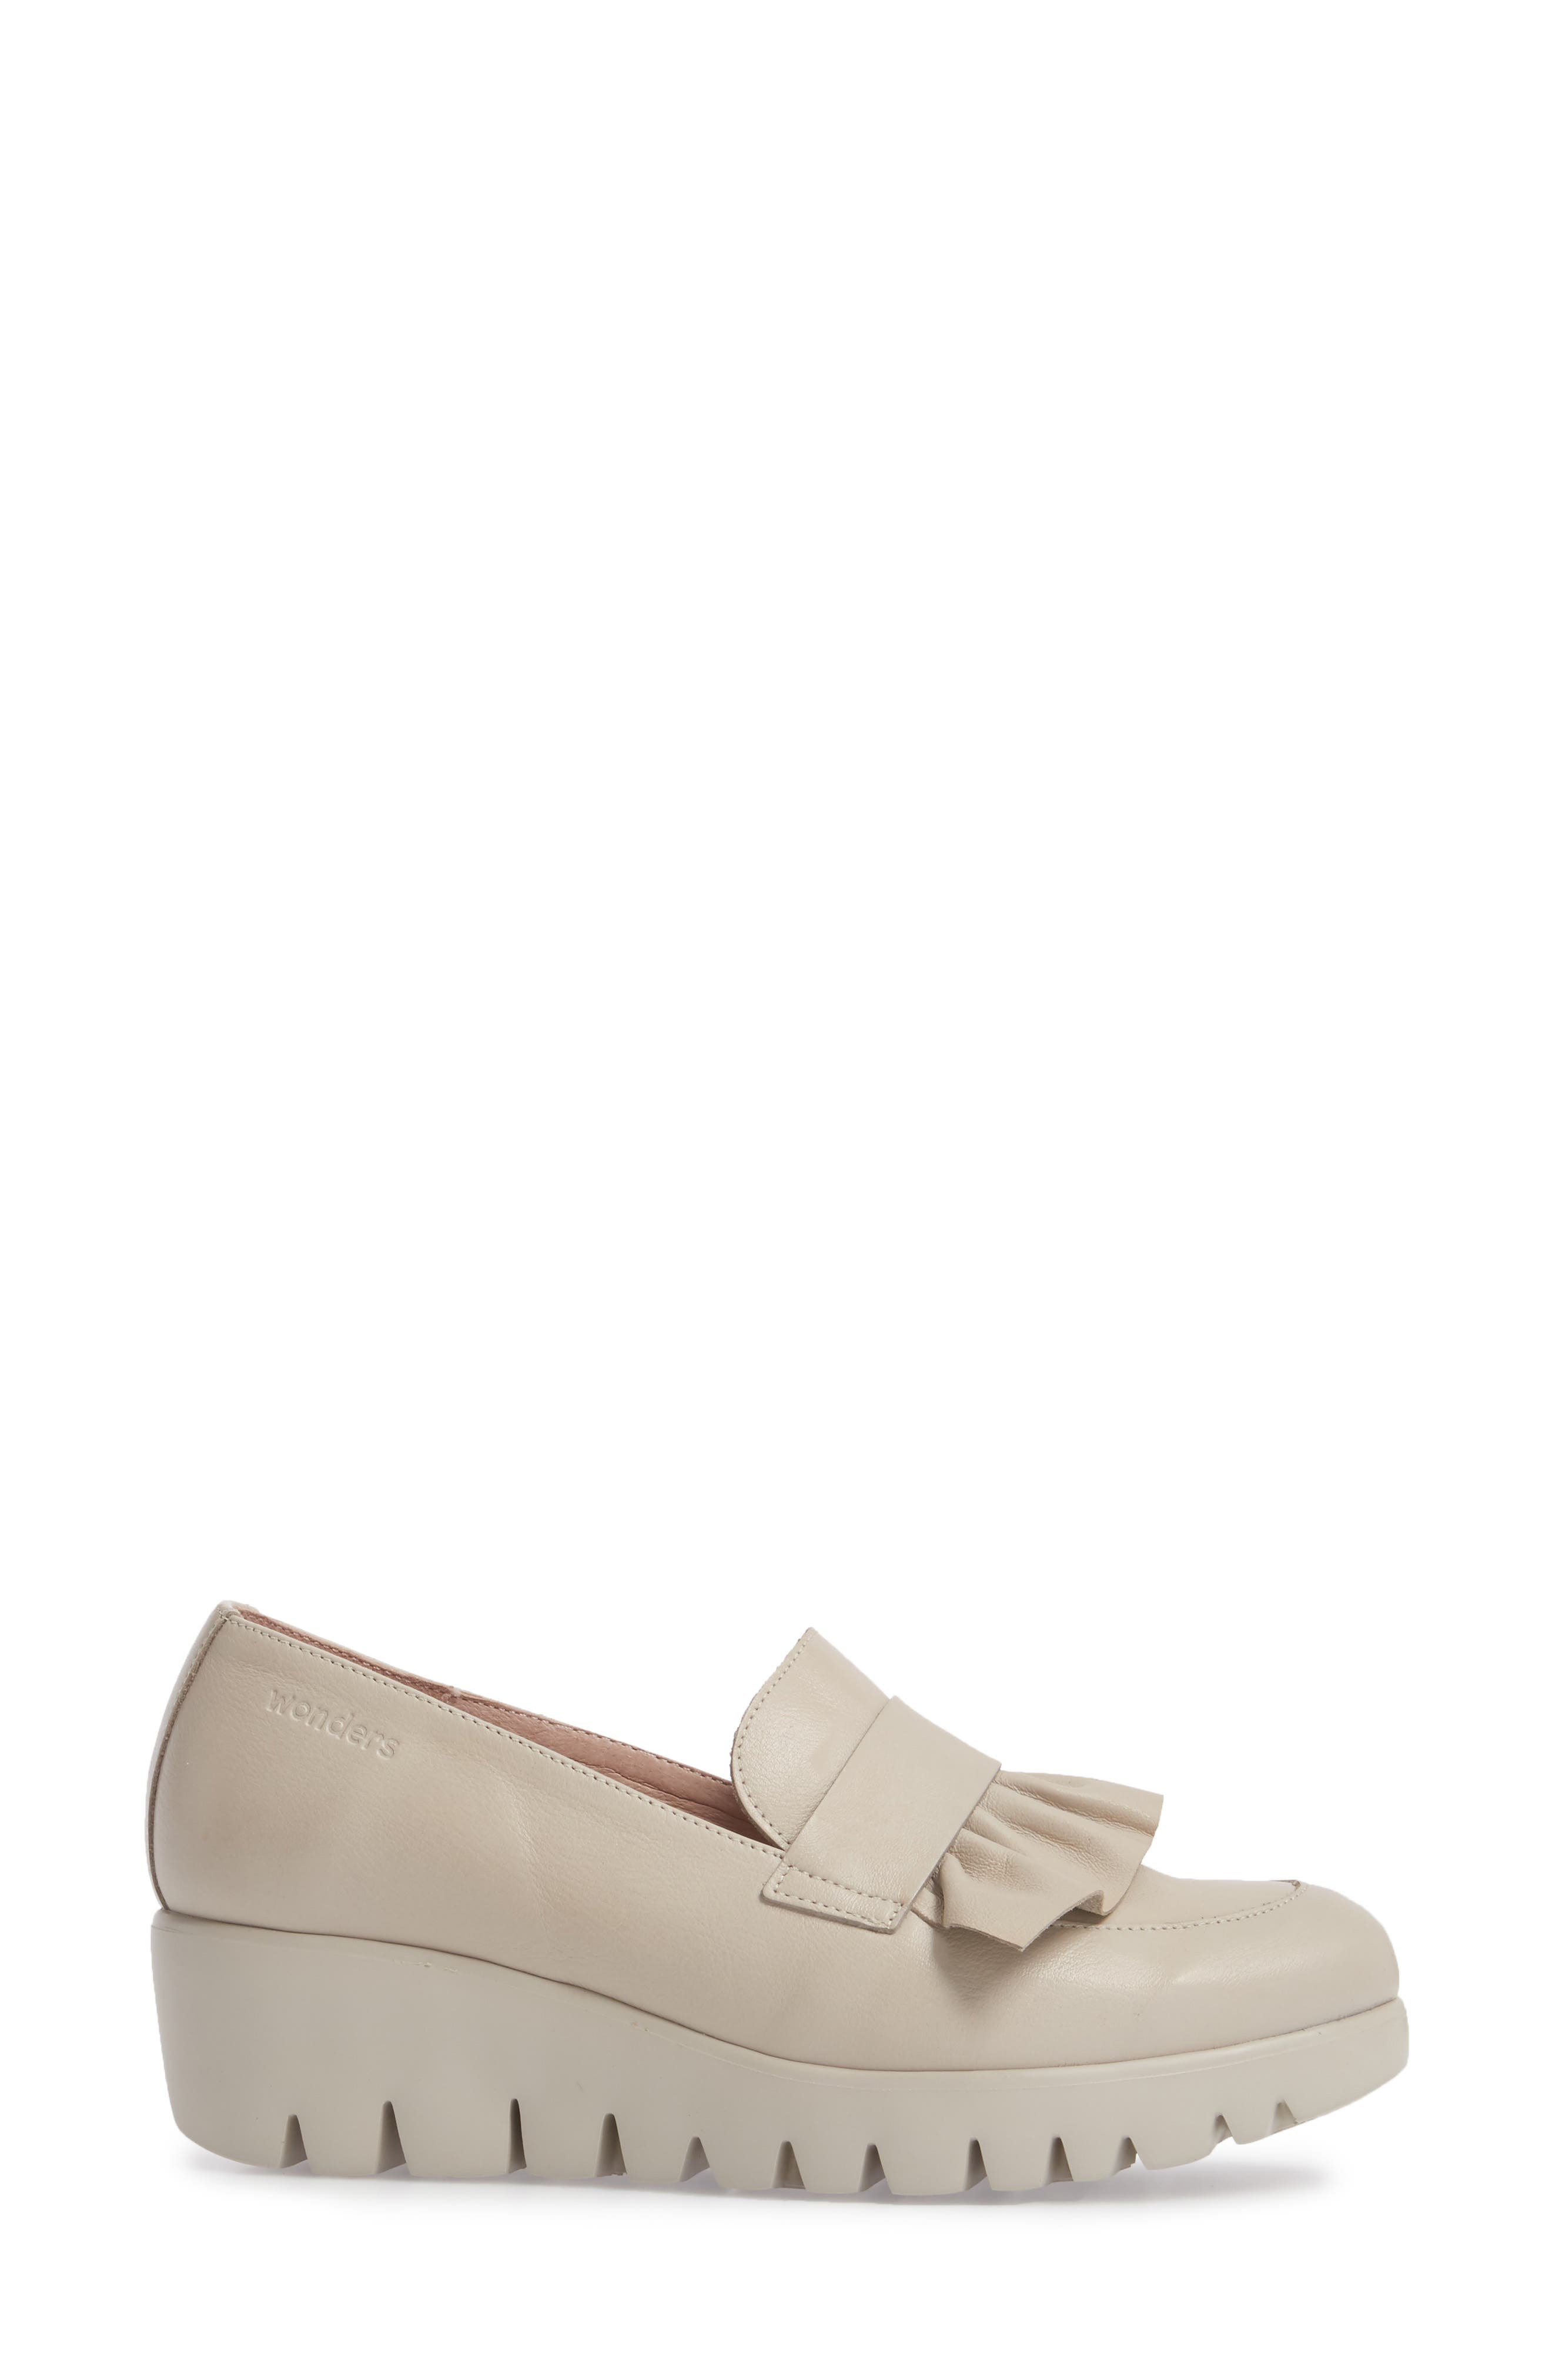 Loafer Wedge,                             Alternate thumbnail 3, color,                             LIGHT GREY LEATHER